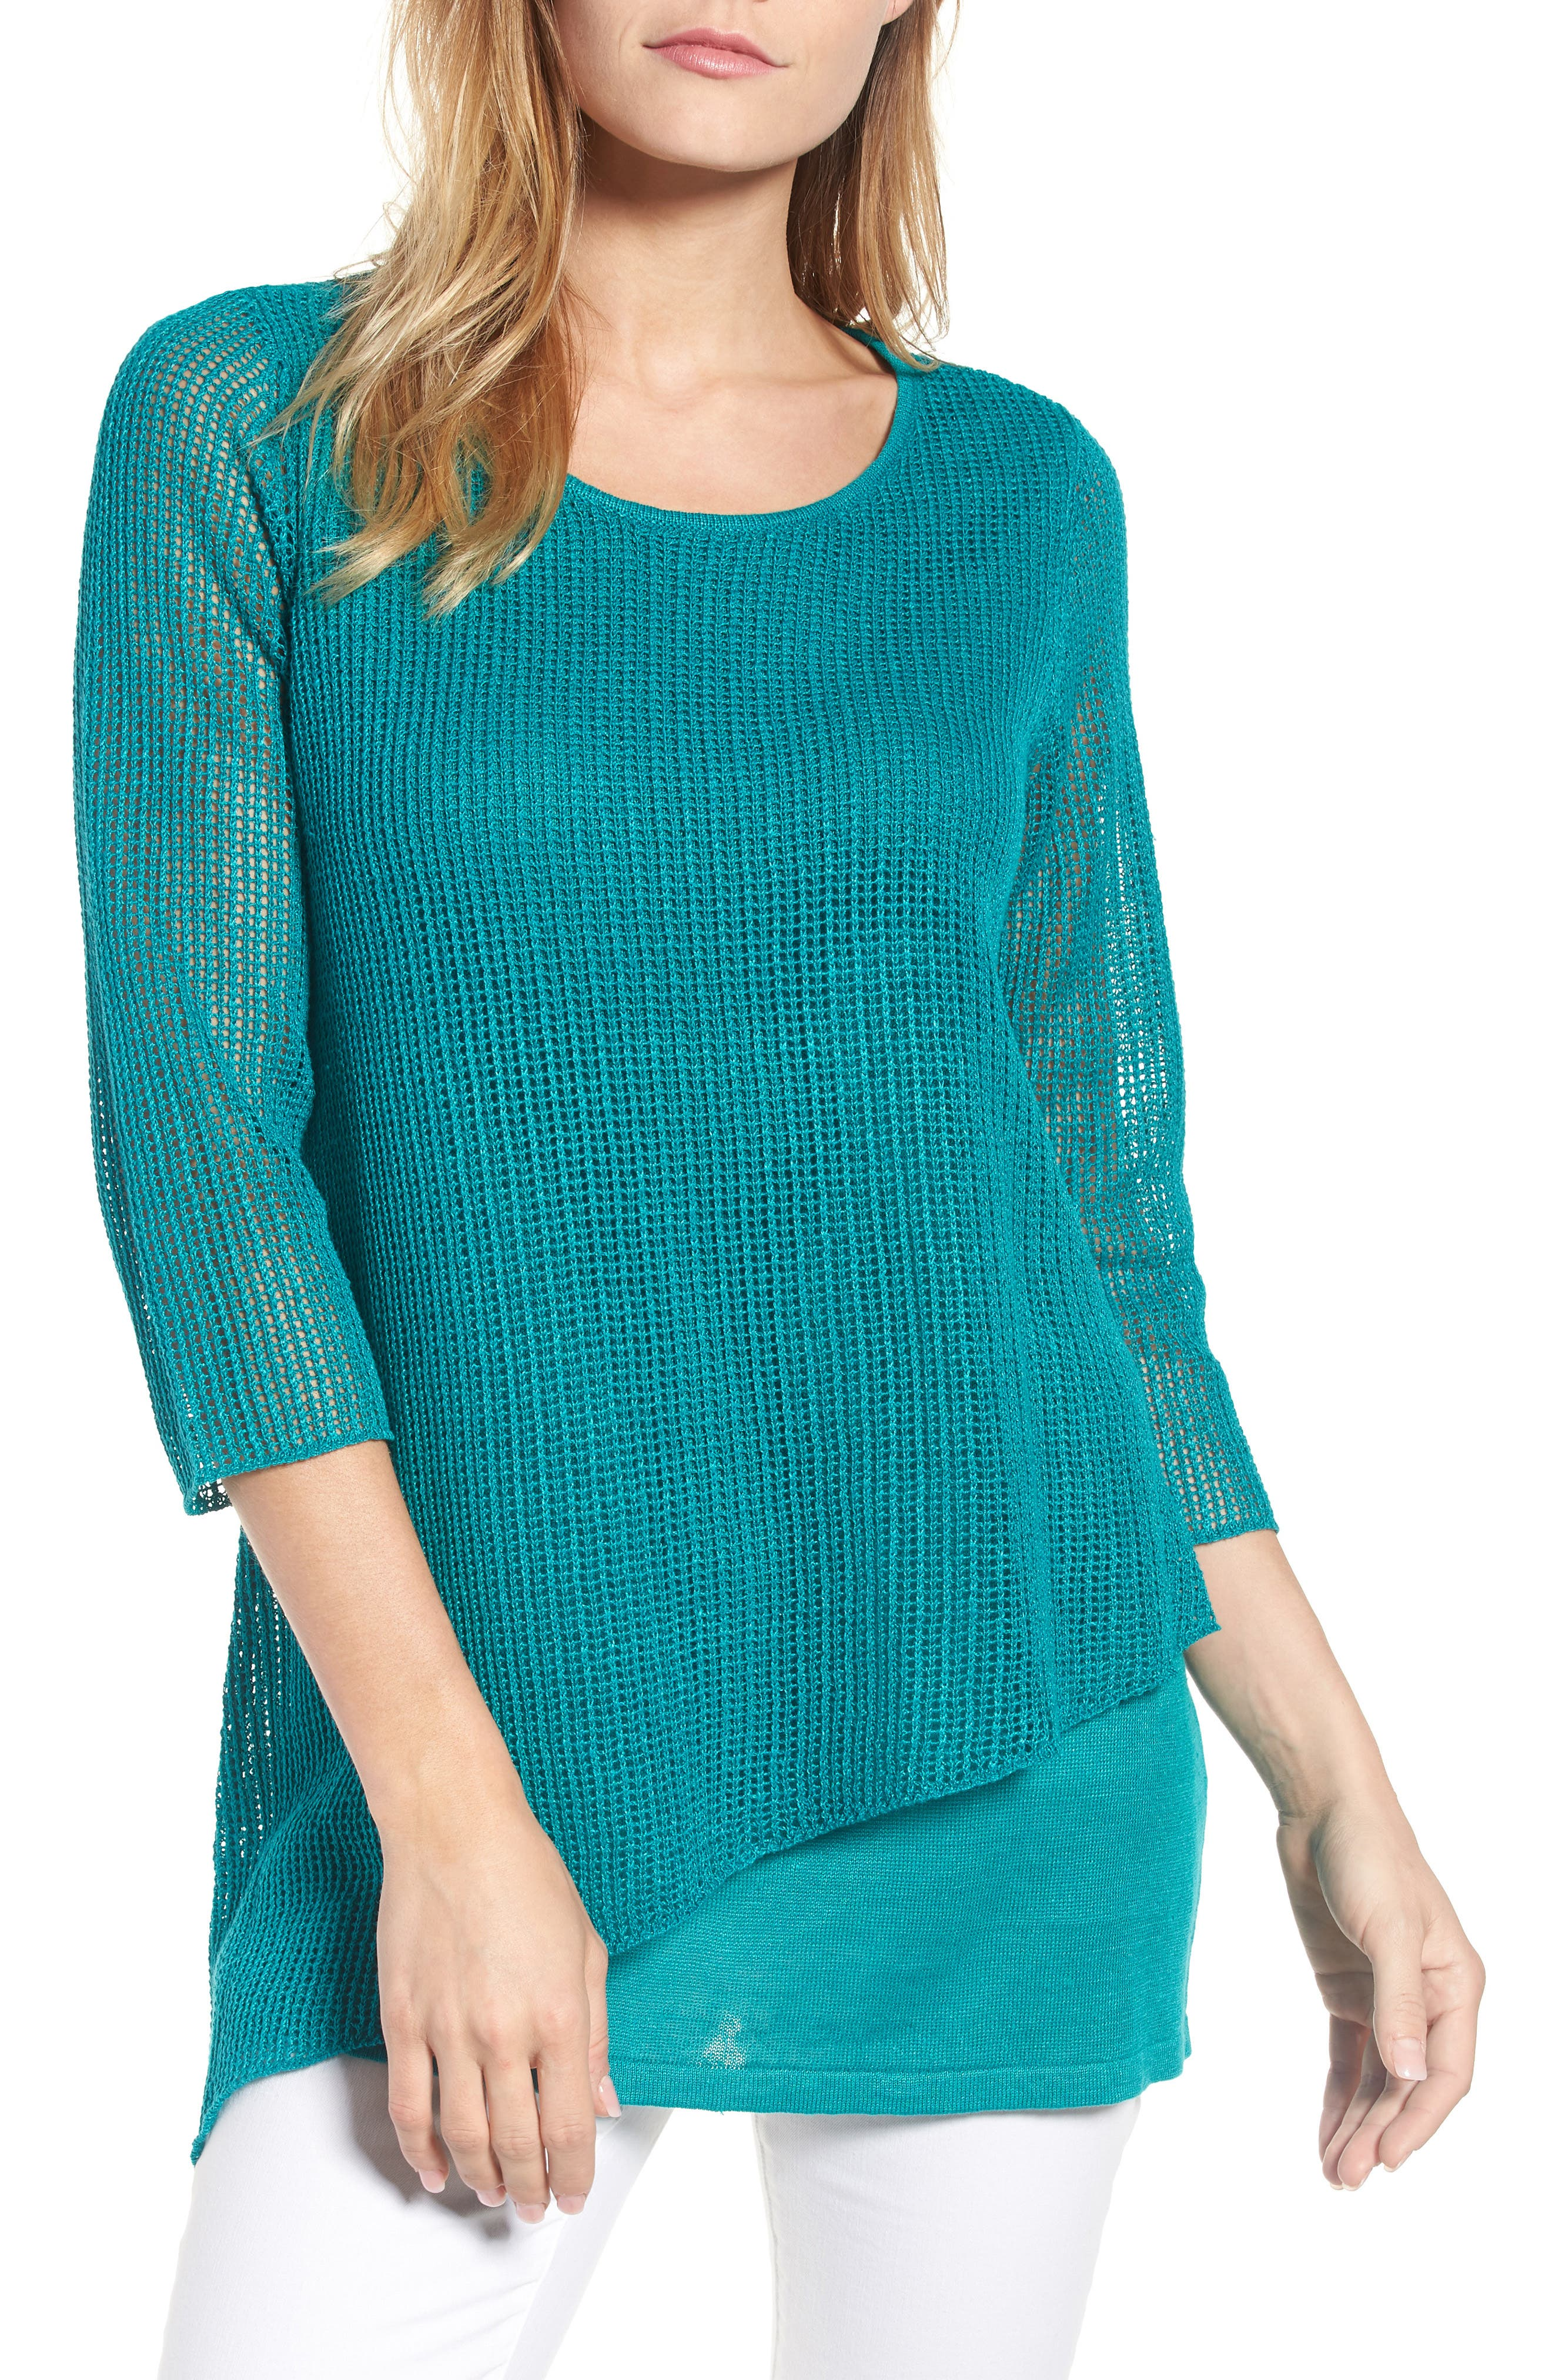 Organic Linen Tunic Sweater,                             Main thumbnail 1, color,                             Turquoise